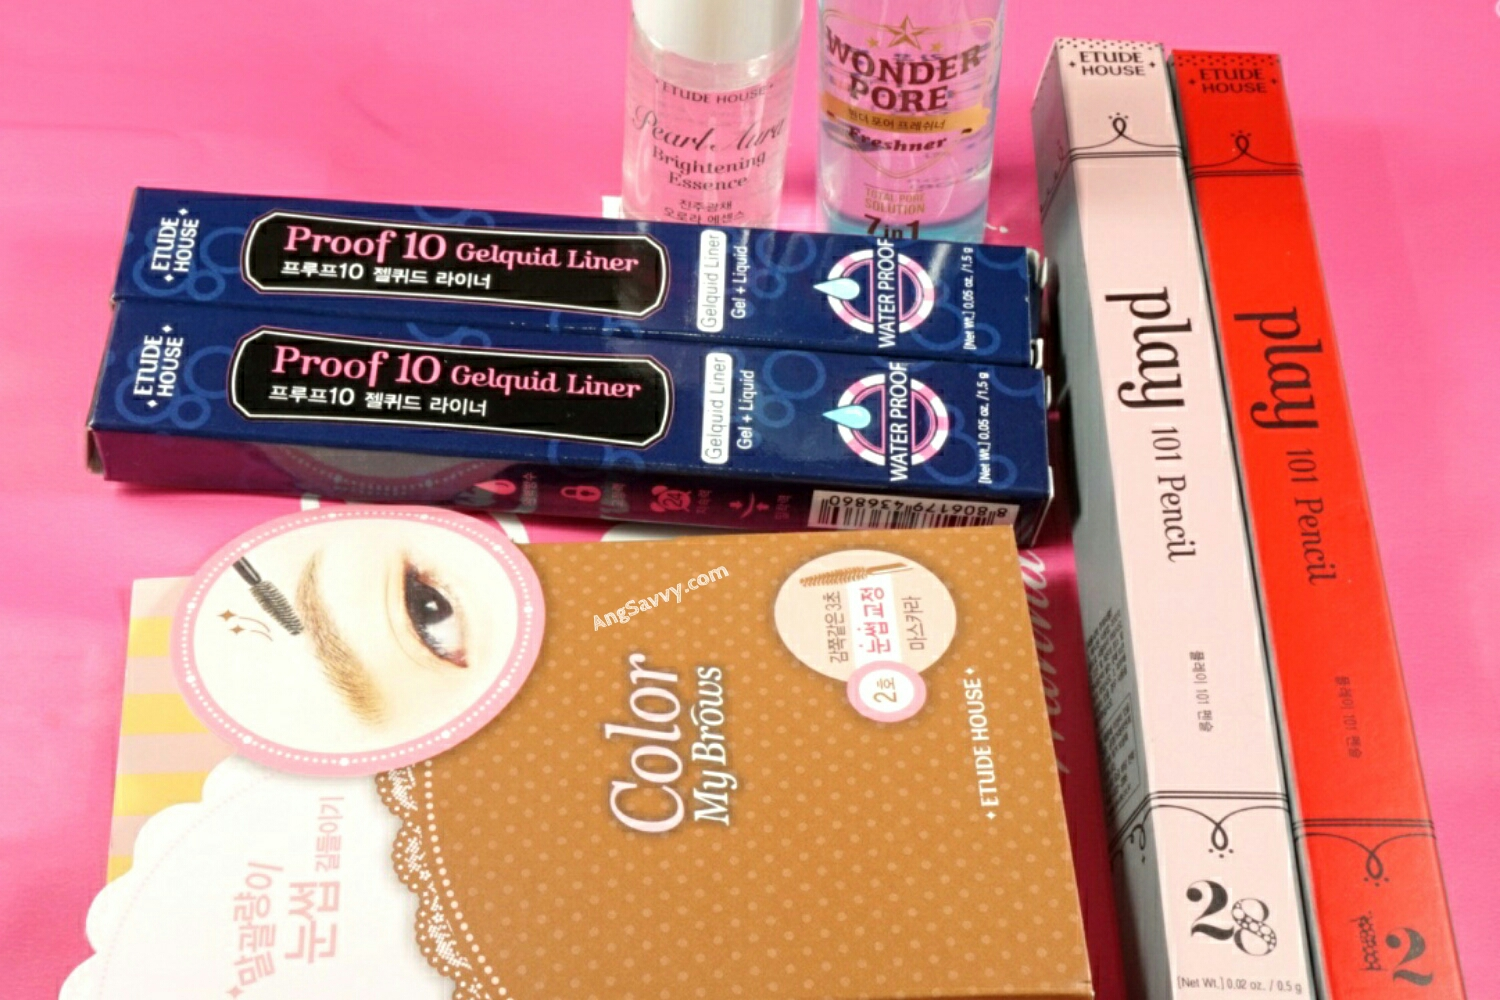 Etude House Korean Makeup Giveaway December 2014 Winner